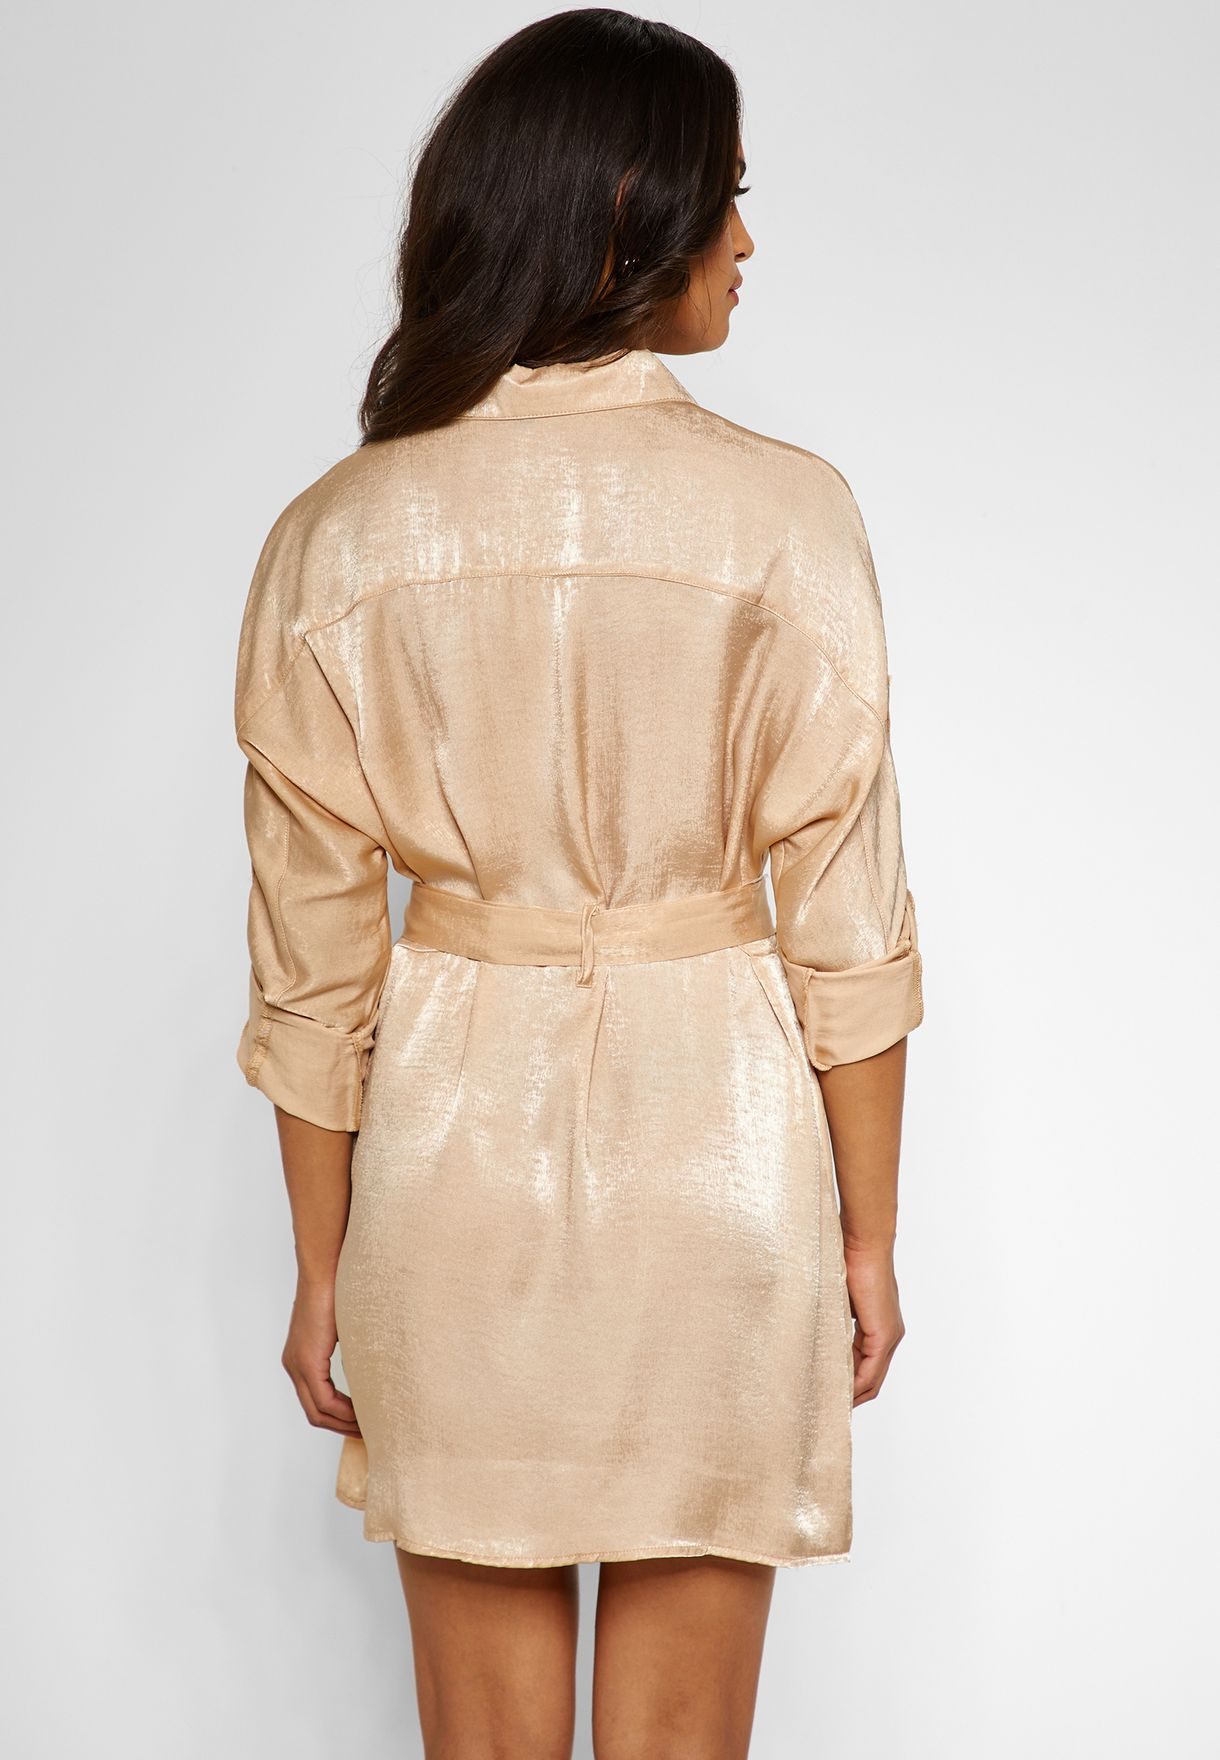 Satin Tie Waist Utility Shirt Dress